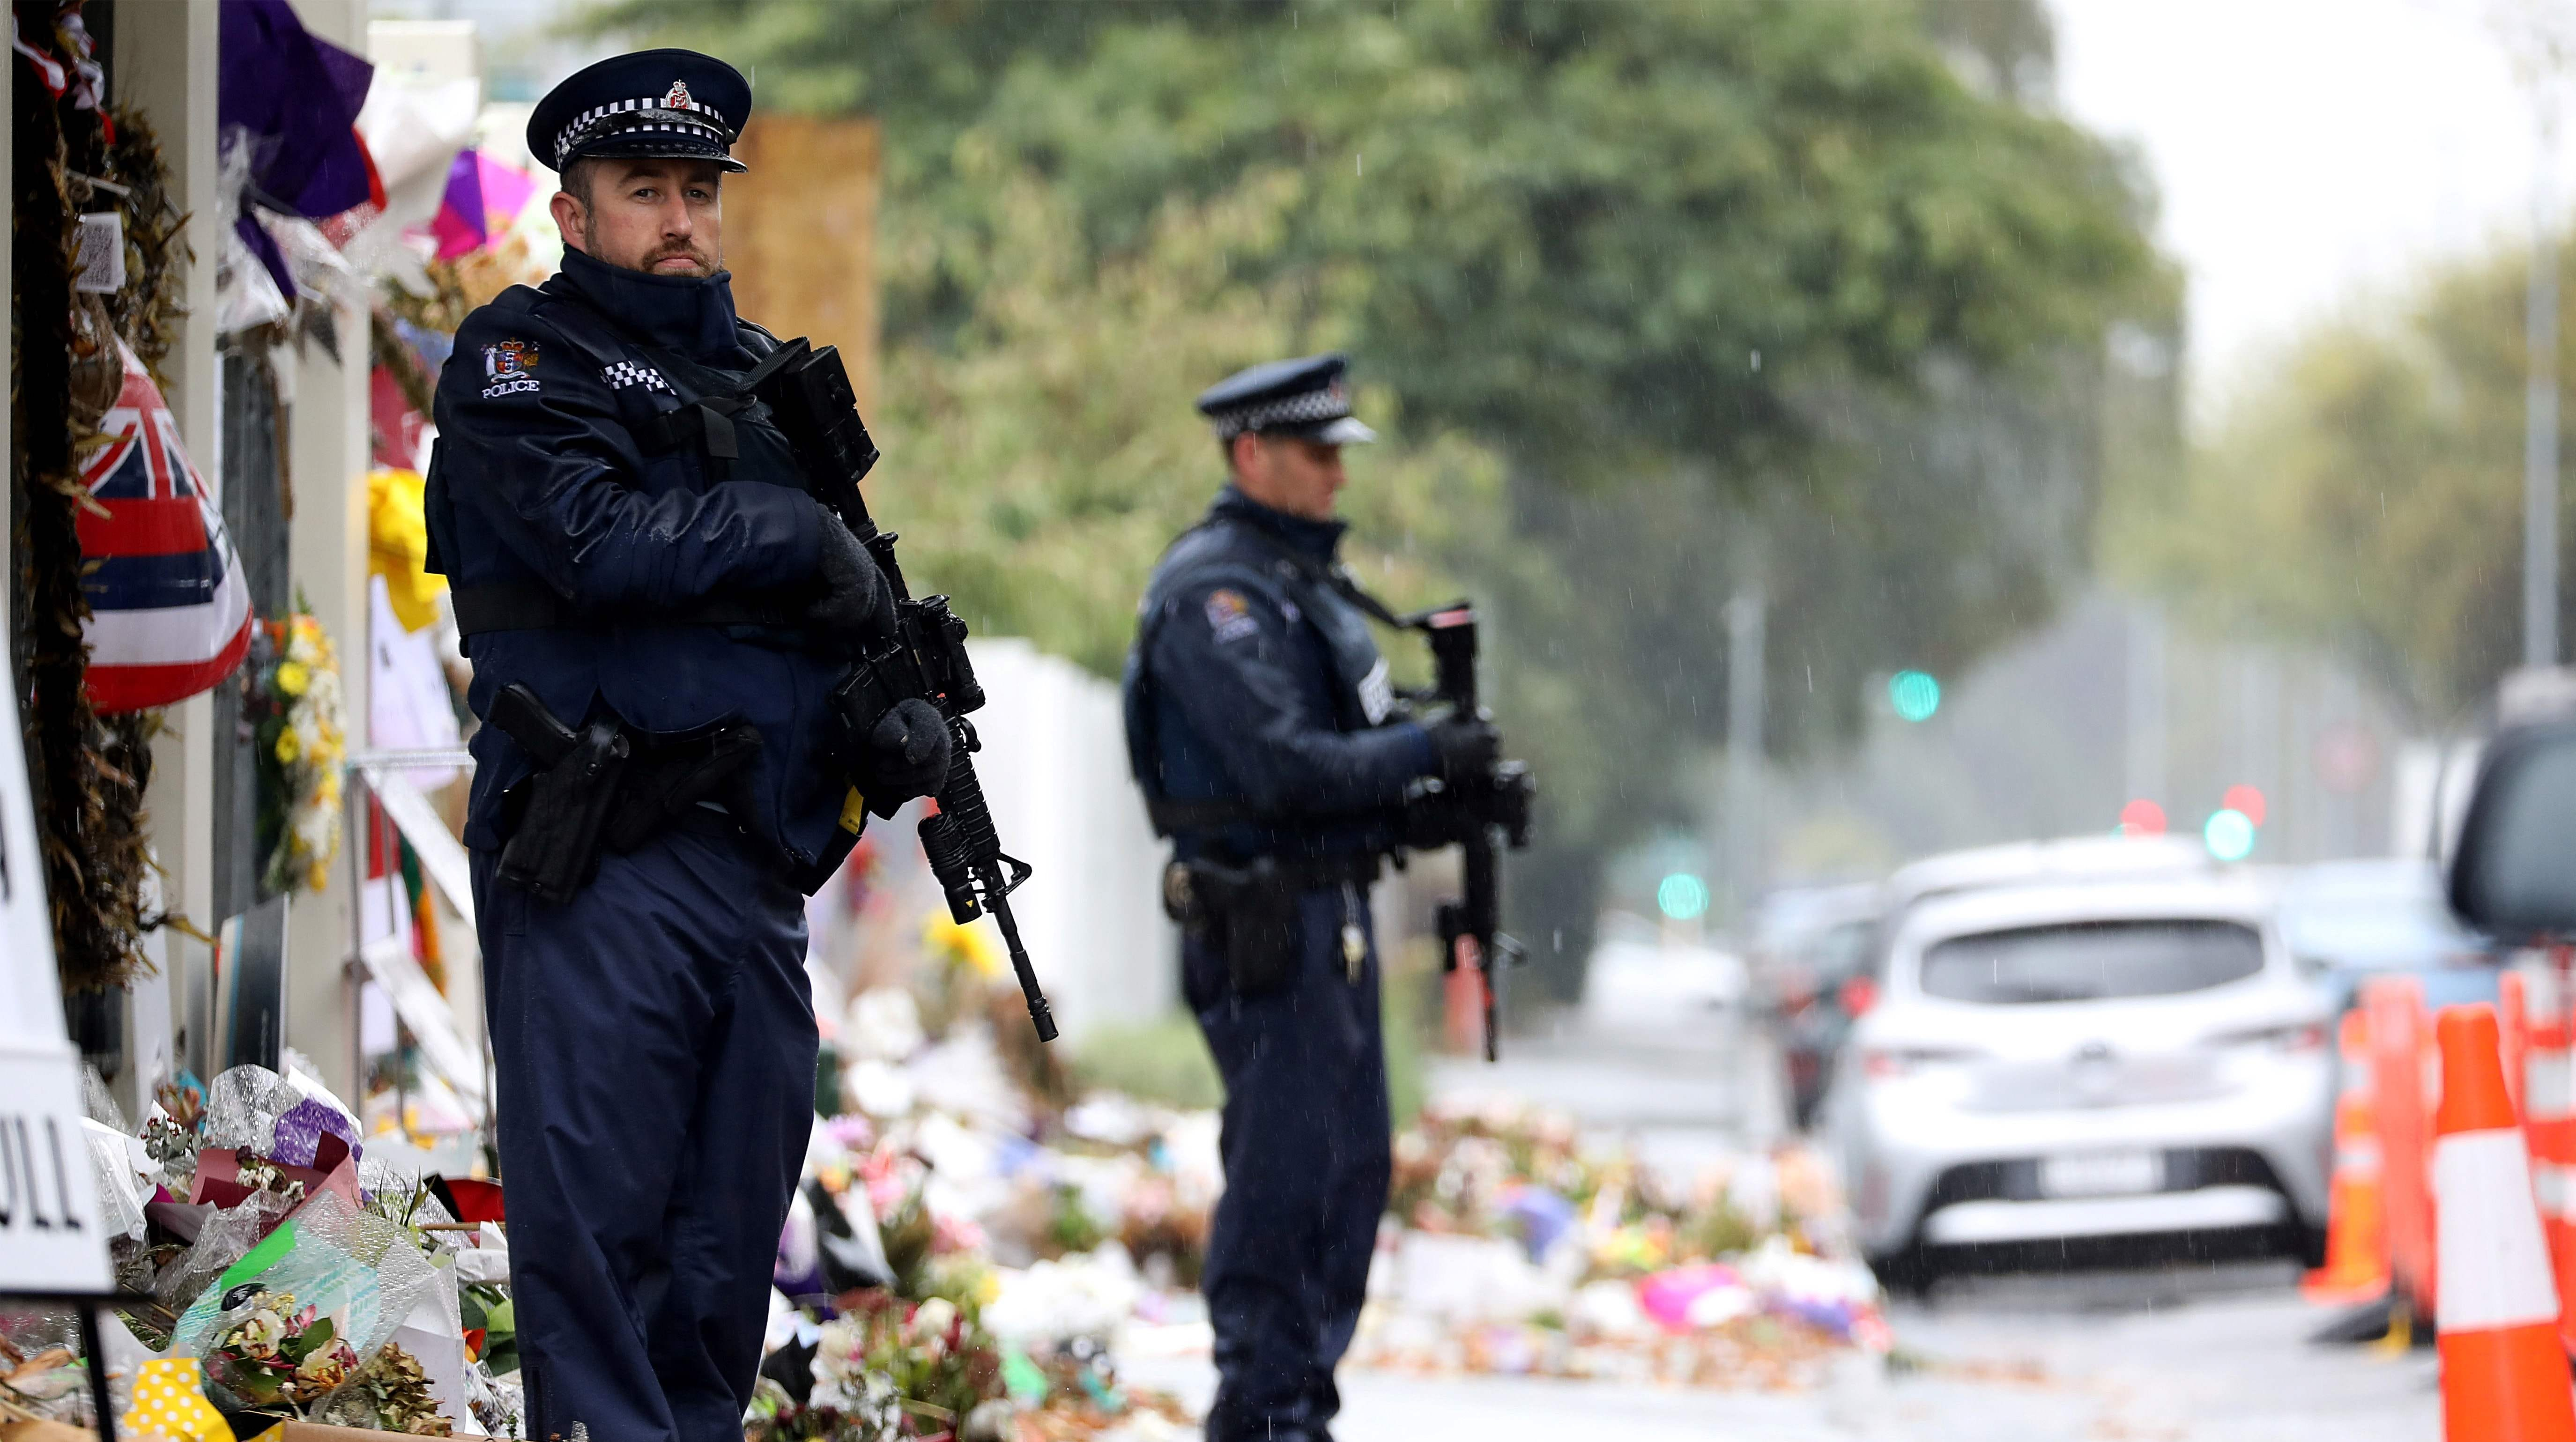 Masjid New Zealand Pinterest: New Zealand Mosque Attacks: Six In Court On Charges They